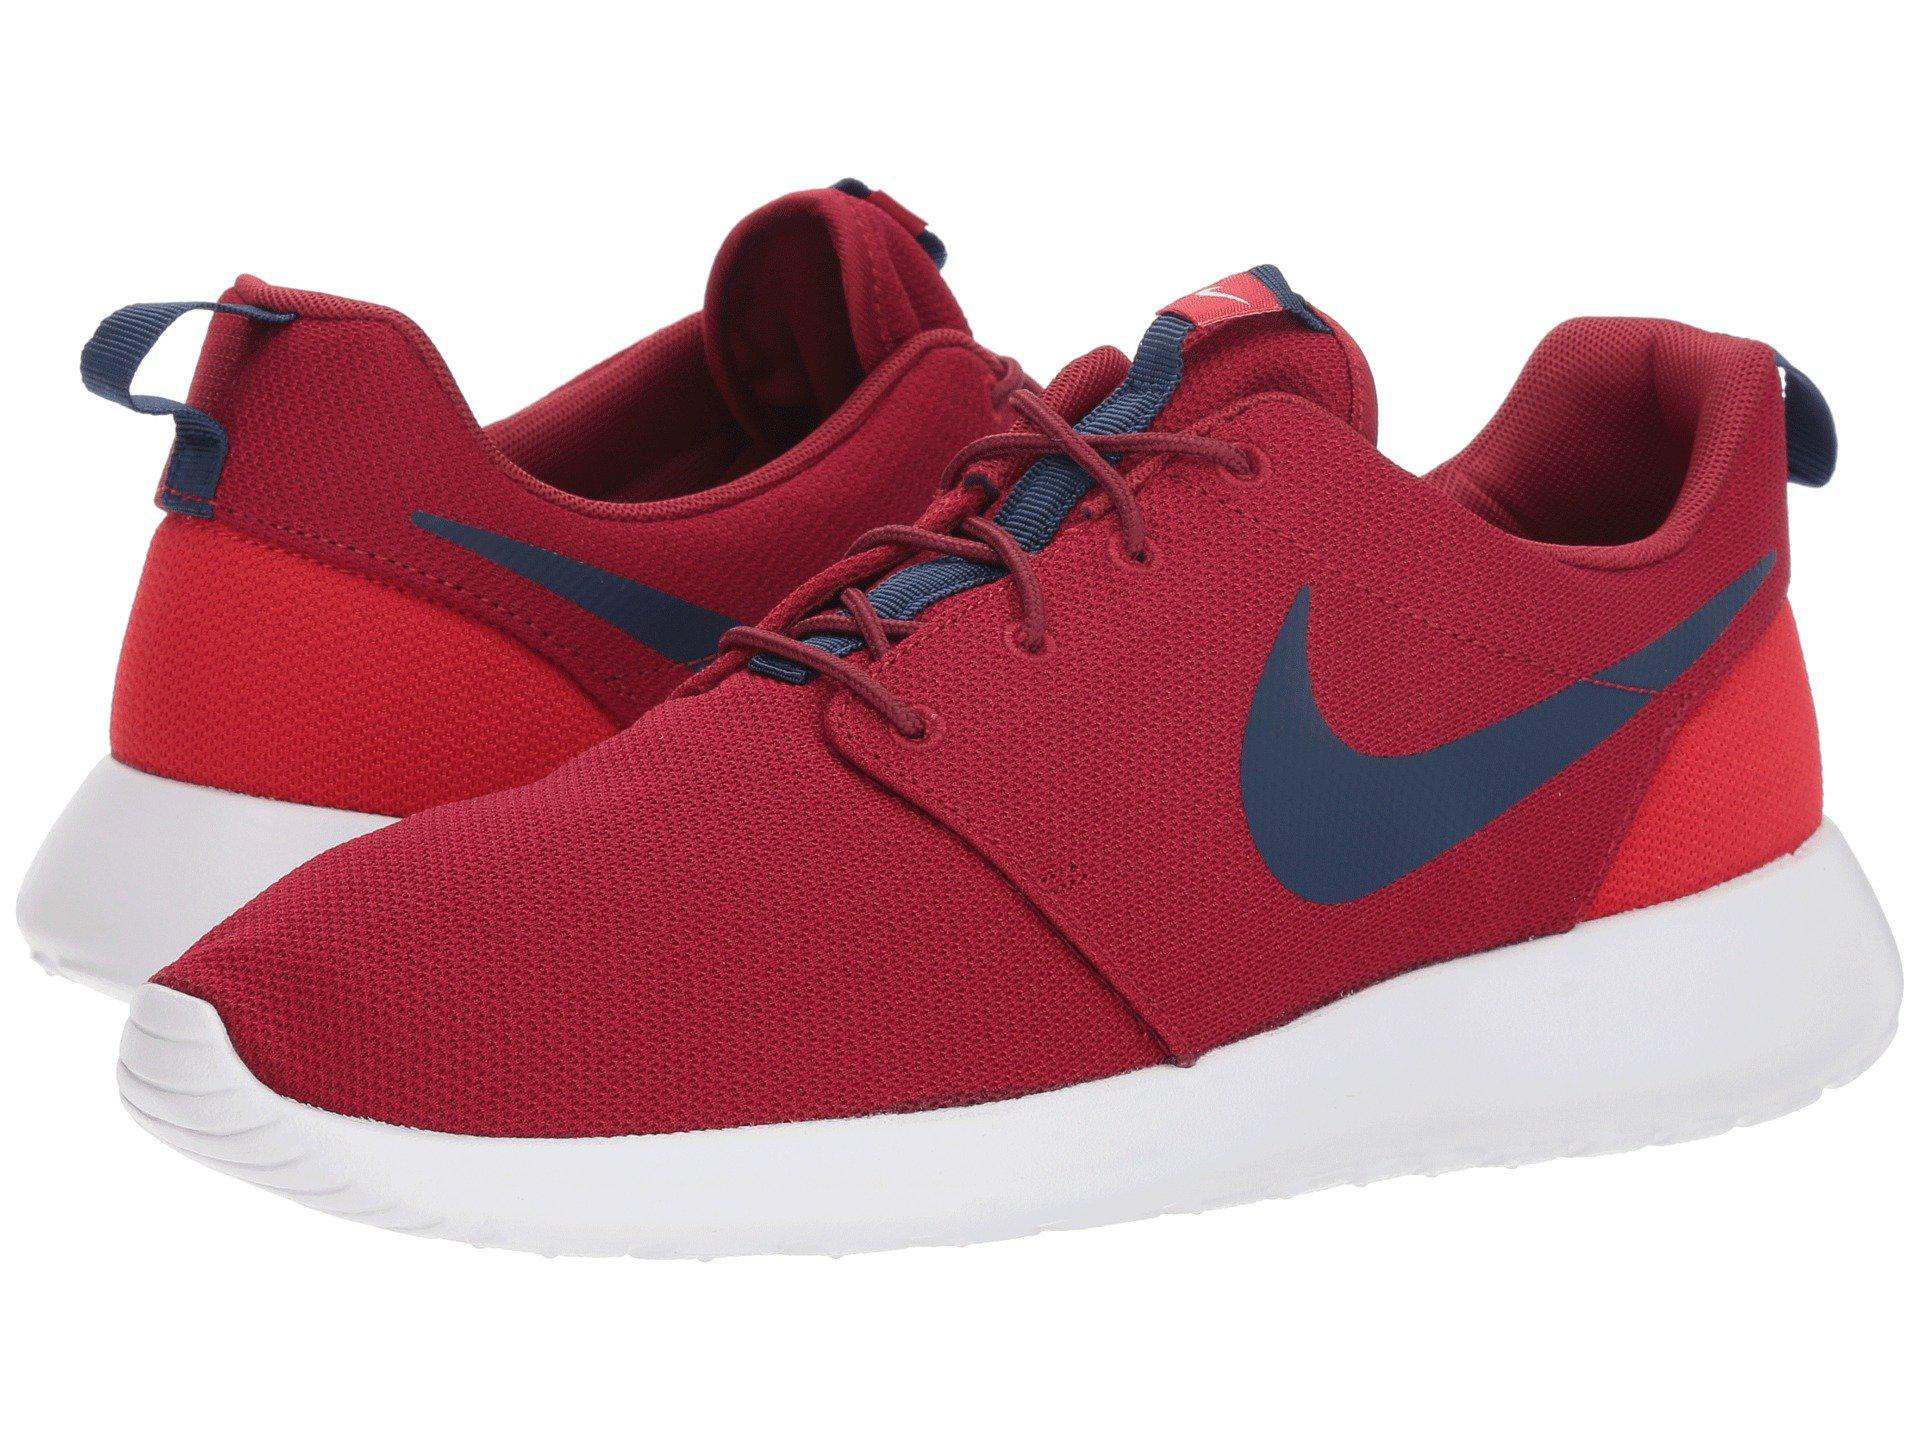 17db65df3a4e2 ... black white 27daa c1e31 uk nike. red roshe one 2c824 fc85d ...